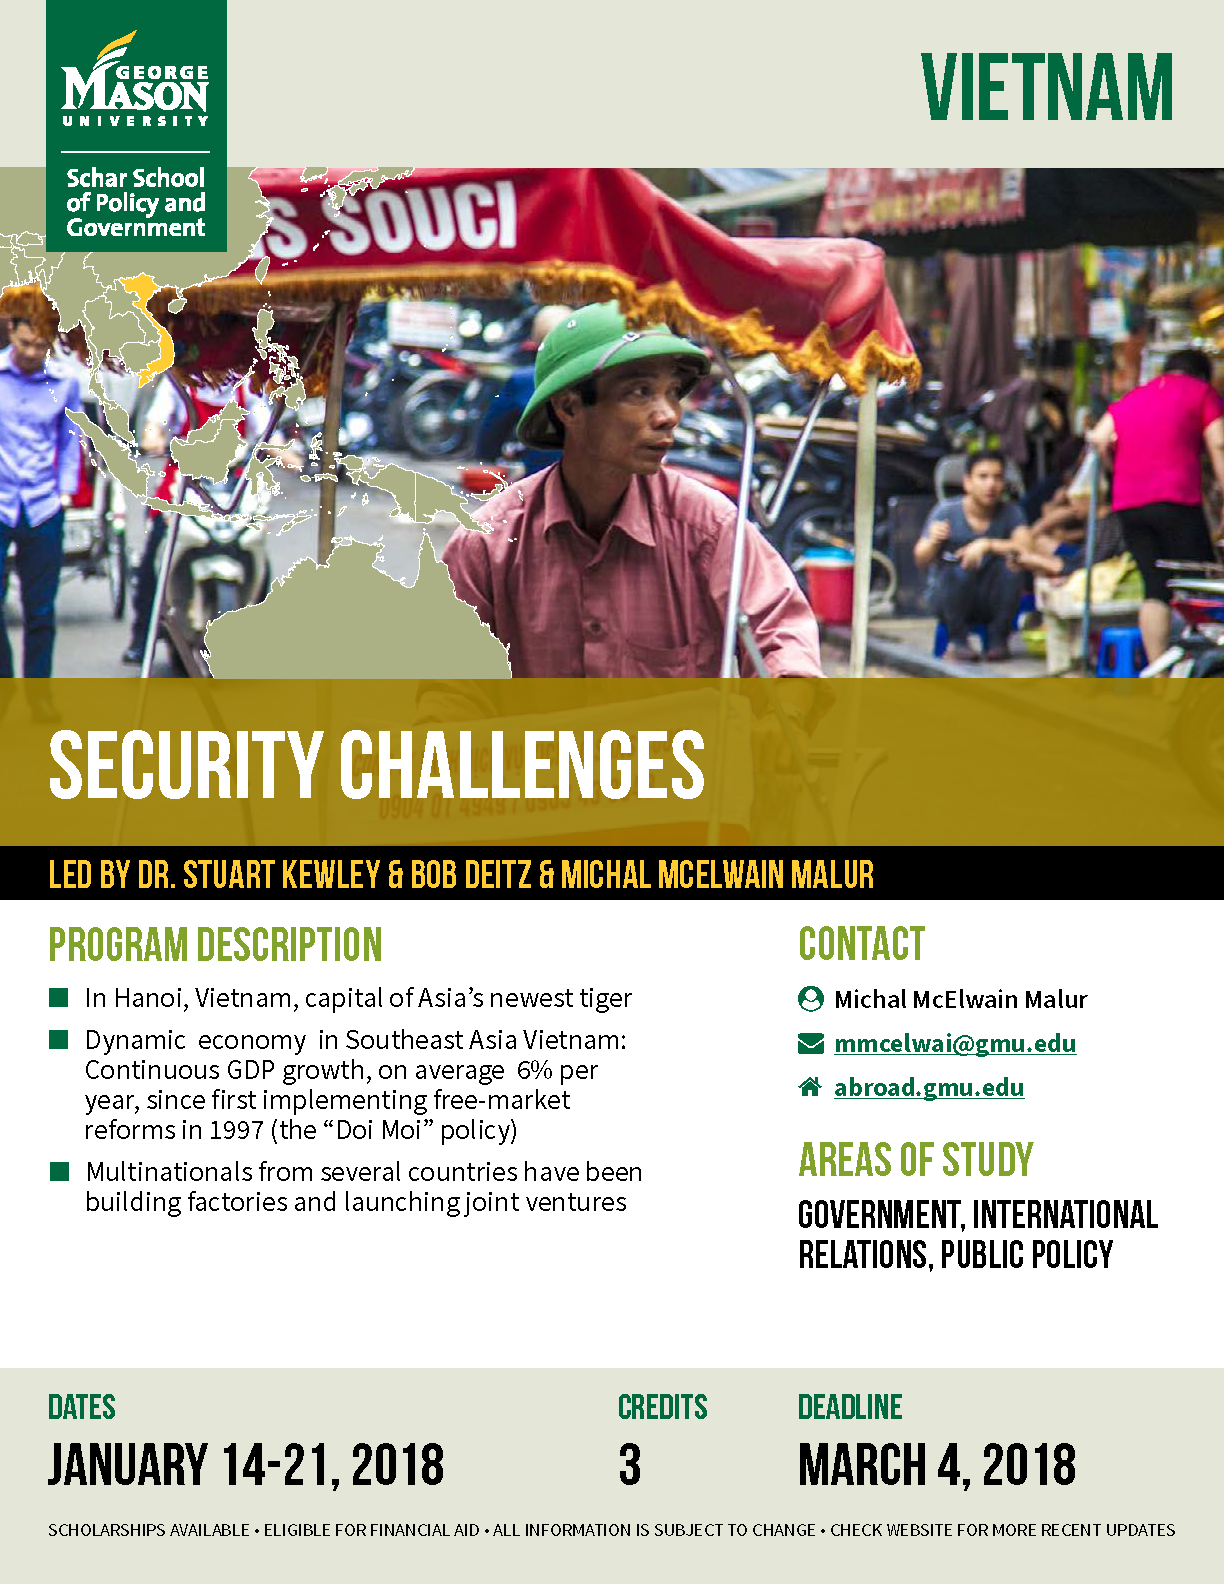 Information regarding Security Challenges in Vietnam is as follows Create Your Own Tags: is #schar #government and Start date (when you would like your content to be posted) is February 09 2018 and End Date  (when you would like your content to be removed from the screens) is February 18 2018 and File is Browse and Group Name is Global Ed Office and Email is goabroad@gmu.edu and File Name is Security-Challenges_comp.jpg and Affiliation is Mason Department and Name of Ad/Event is Security Challenges in Vietnam and Panel for your ad to be displayed is Side and Name is Sophie Smith and